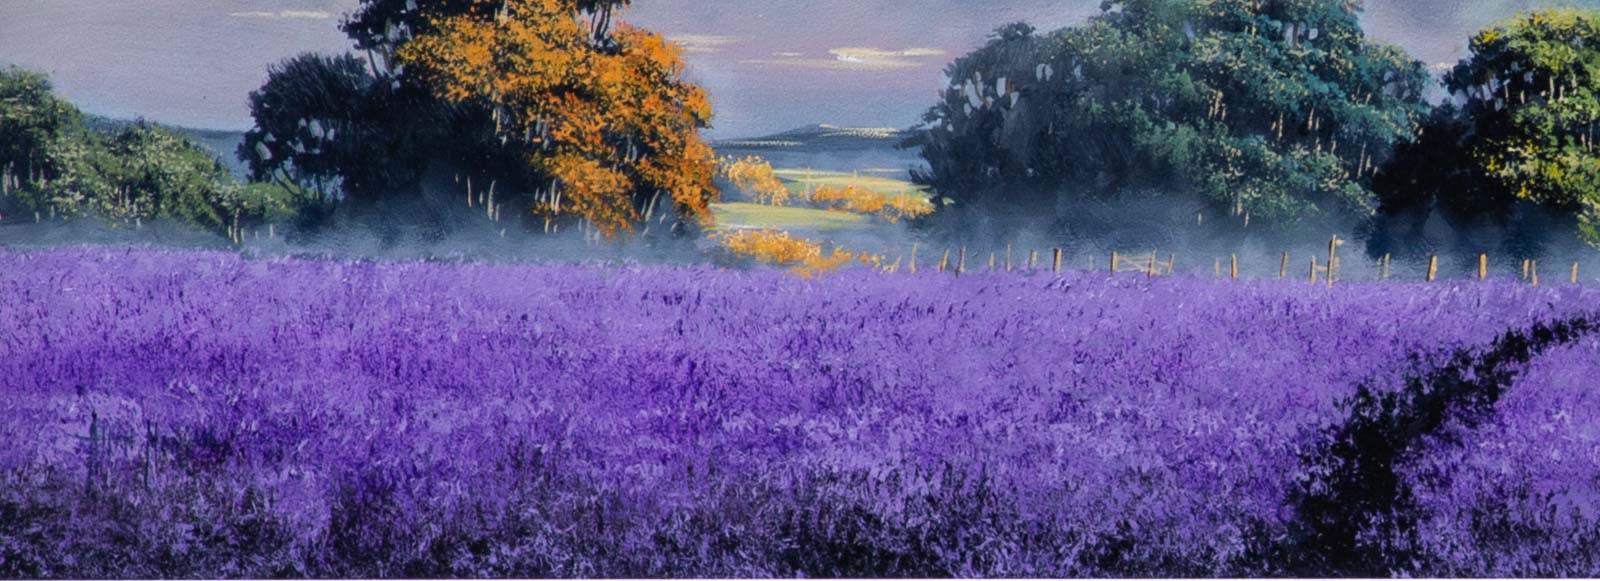 A Walk Through the Lavender